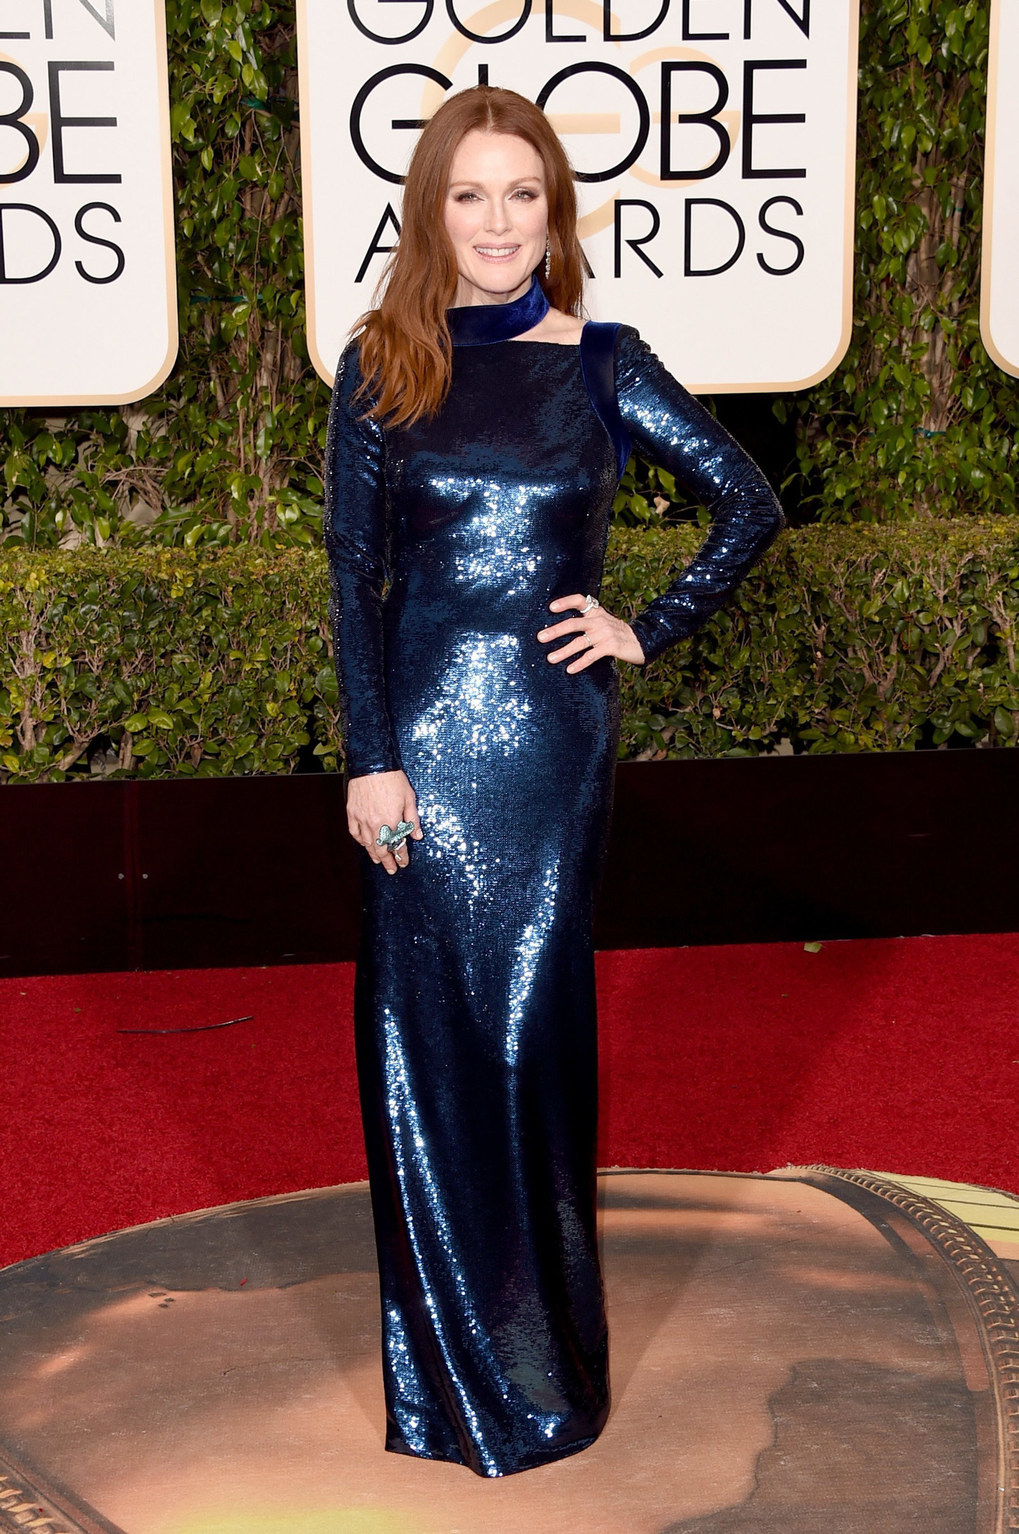 Actress Julianne Moore attends the 73rd Annual Golden Globe Awards held at the Beverly Hilton Hotel on January 10, 2016 in Beverly Hills, California.  (Photo by Jason Merritt/Getty Images)